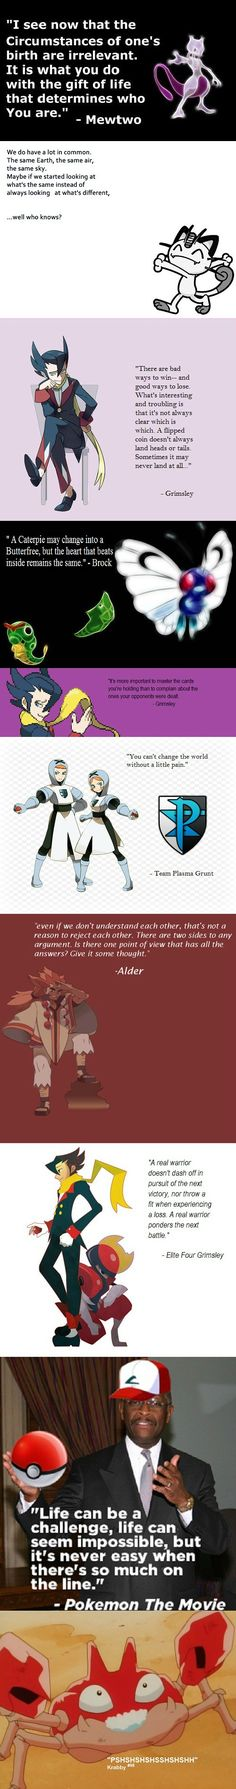 combined Pokemon quotes that inspire me. The last one brought me to tears